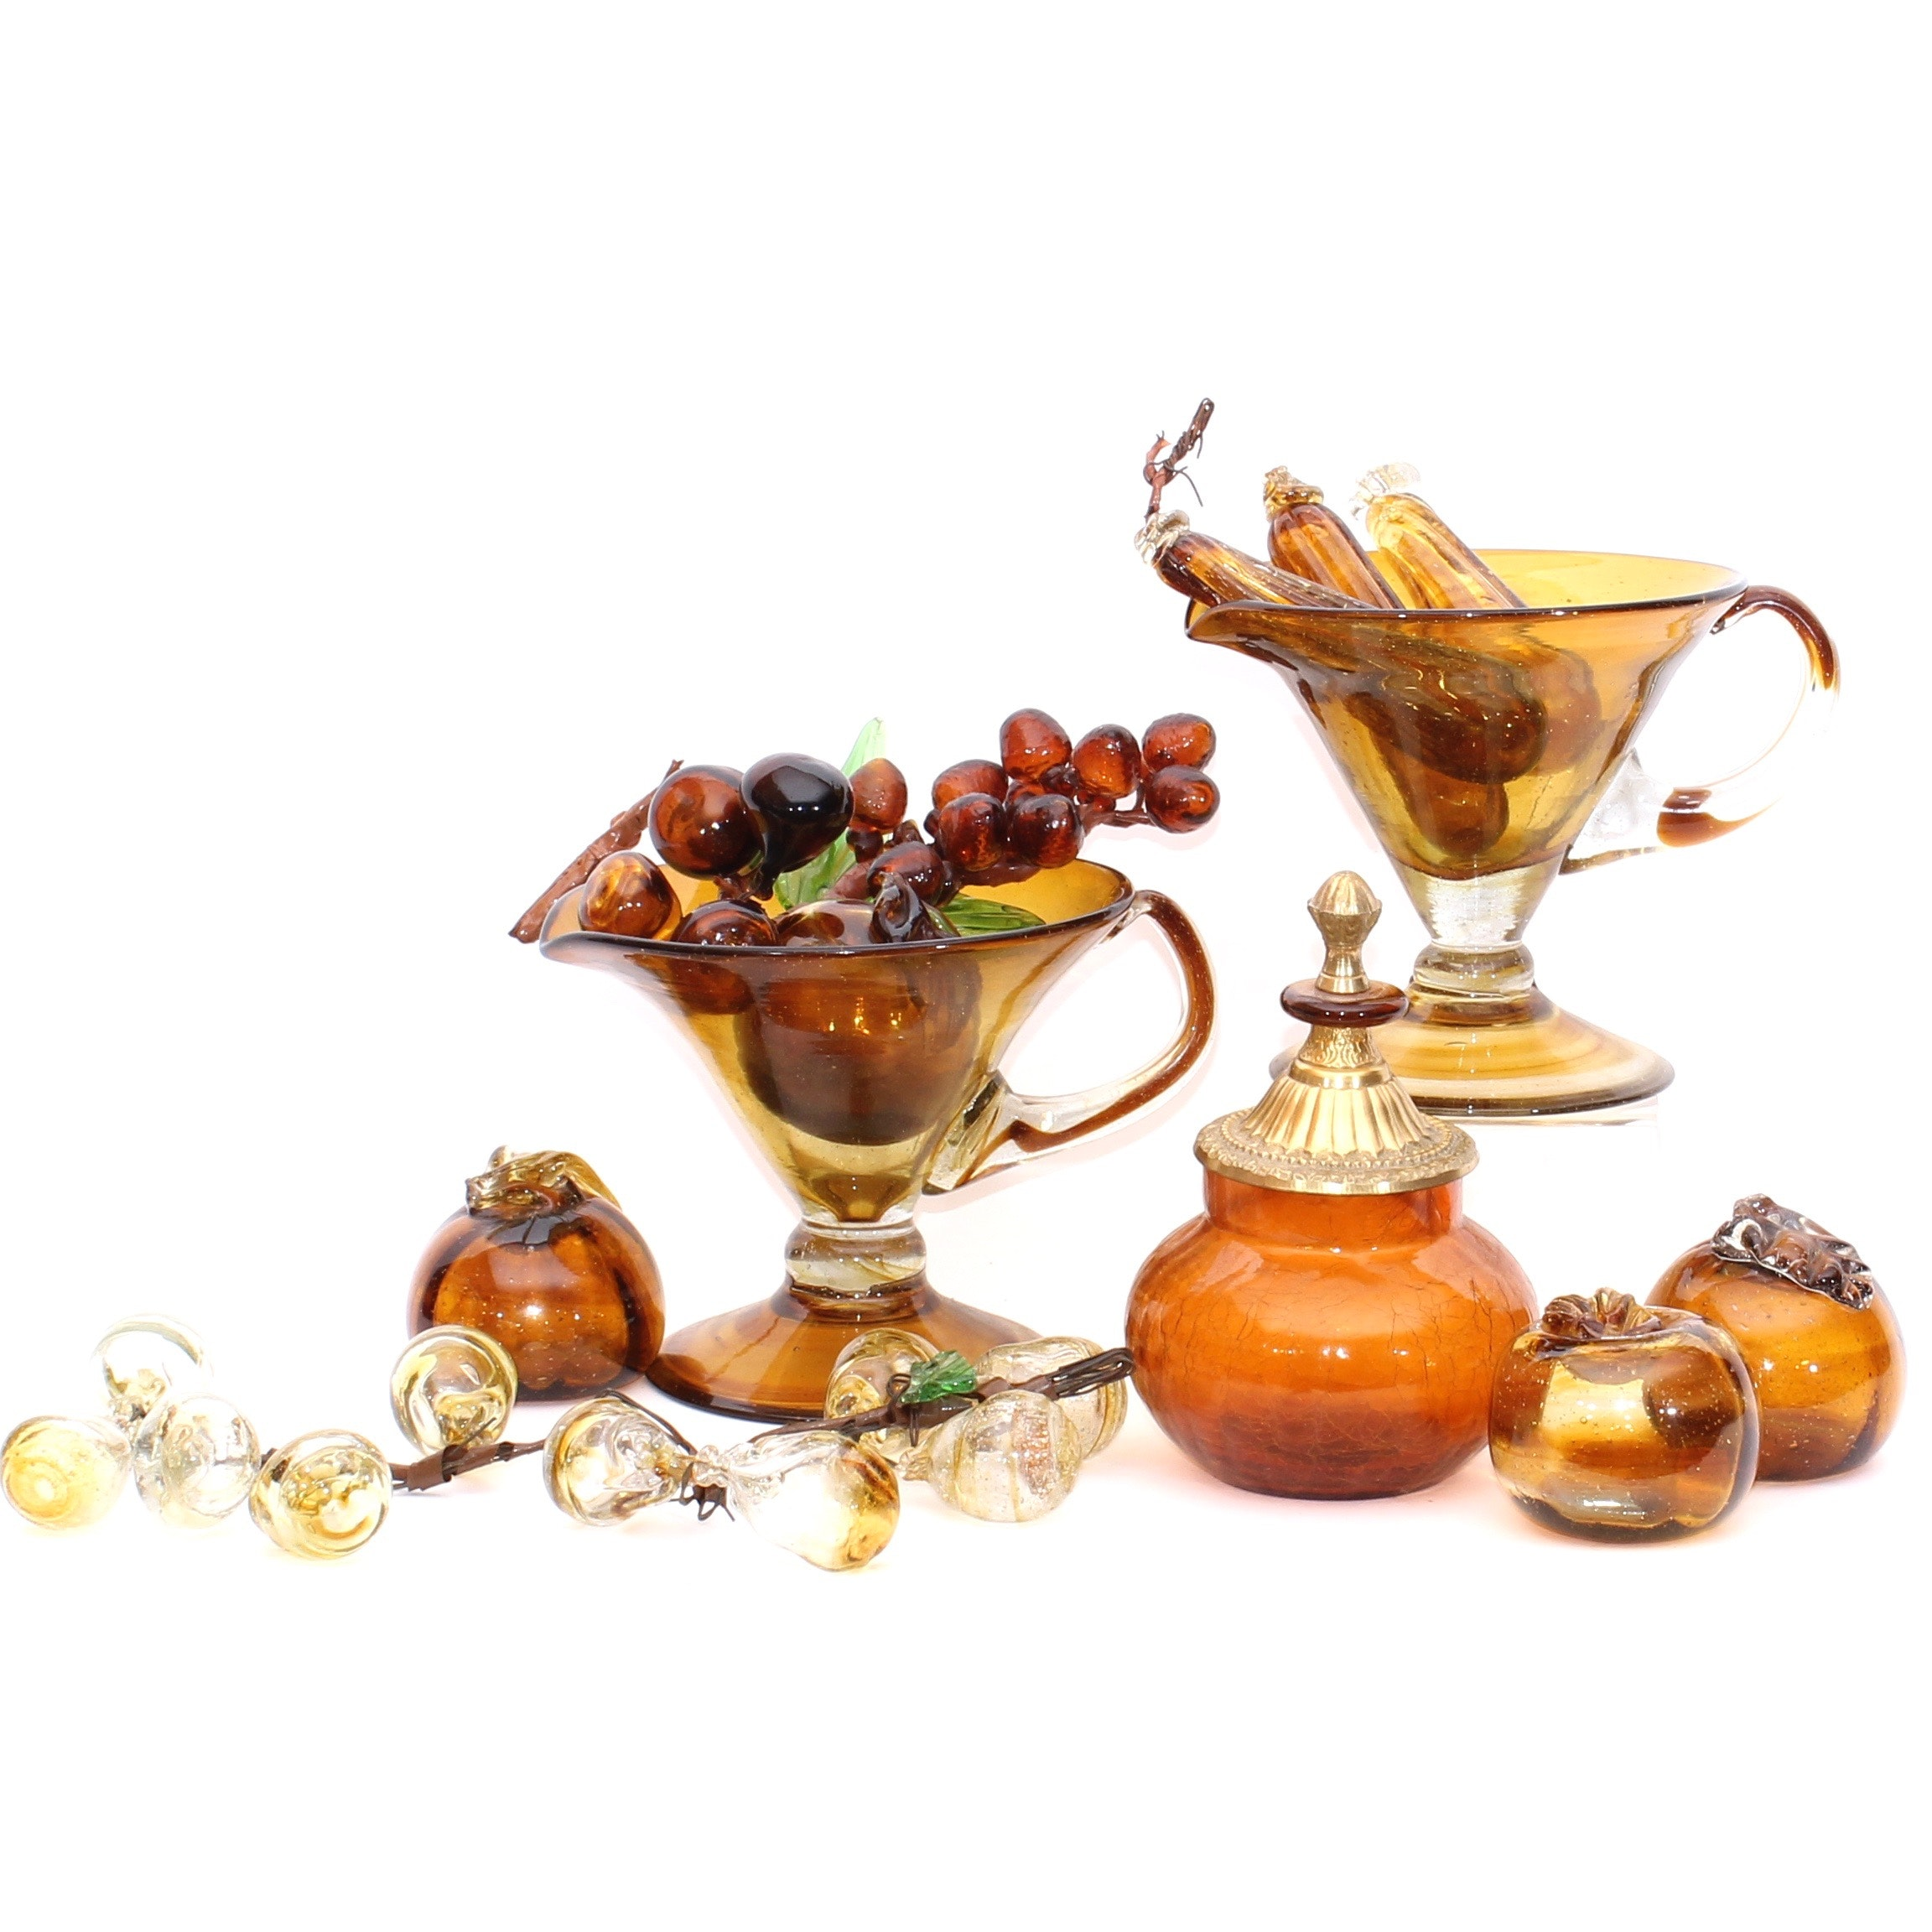 Collection of Amber Glass Decor